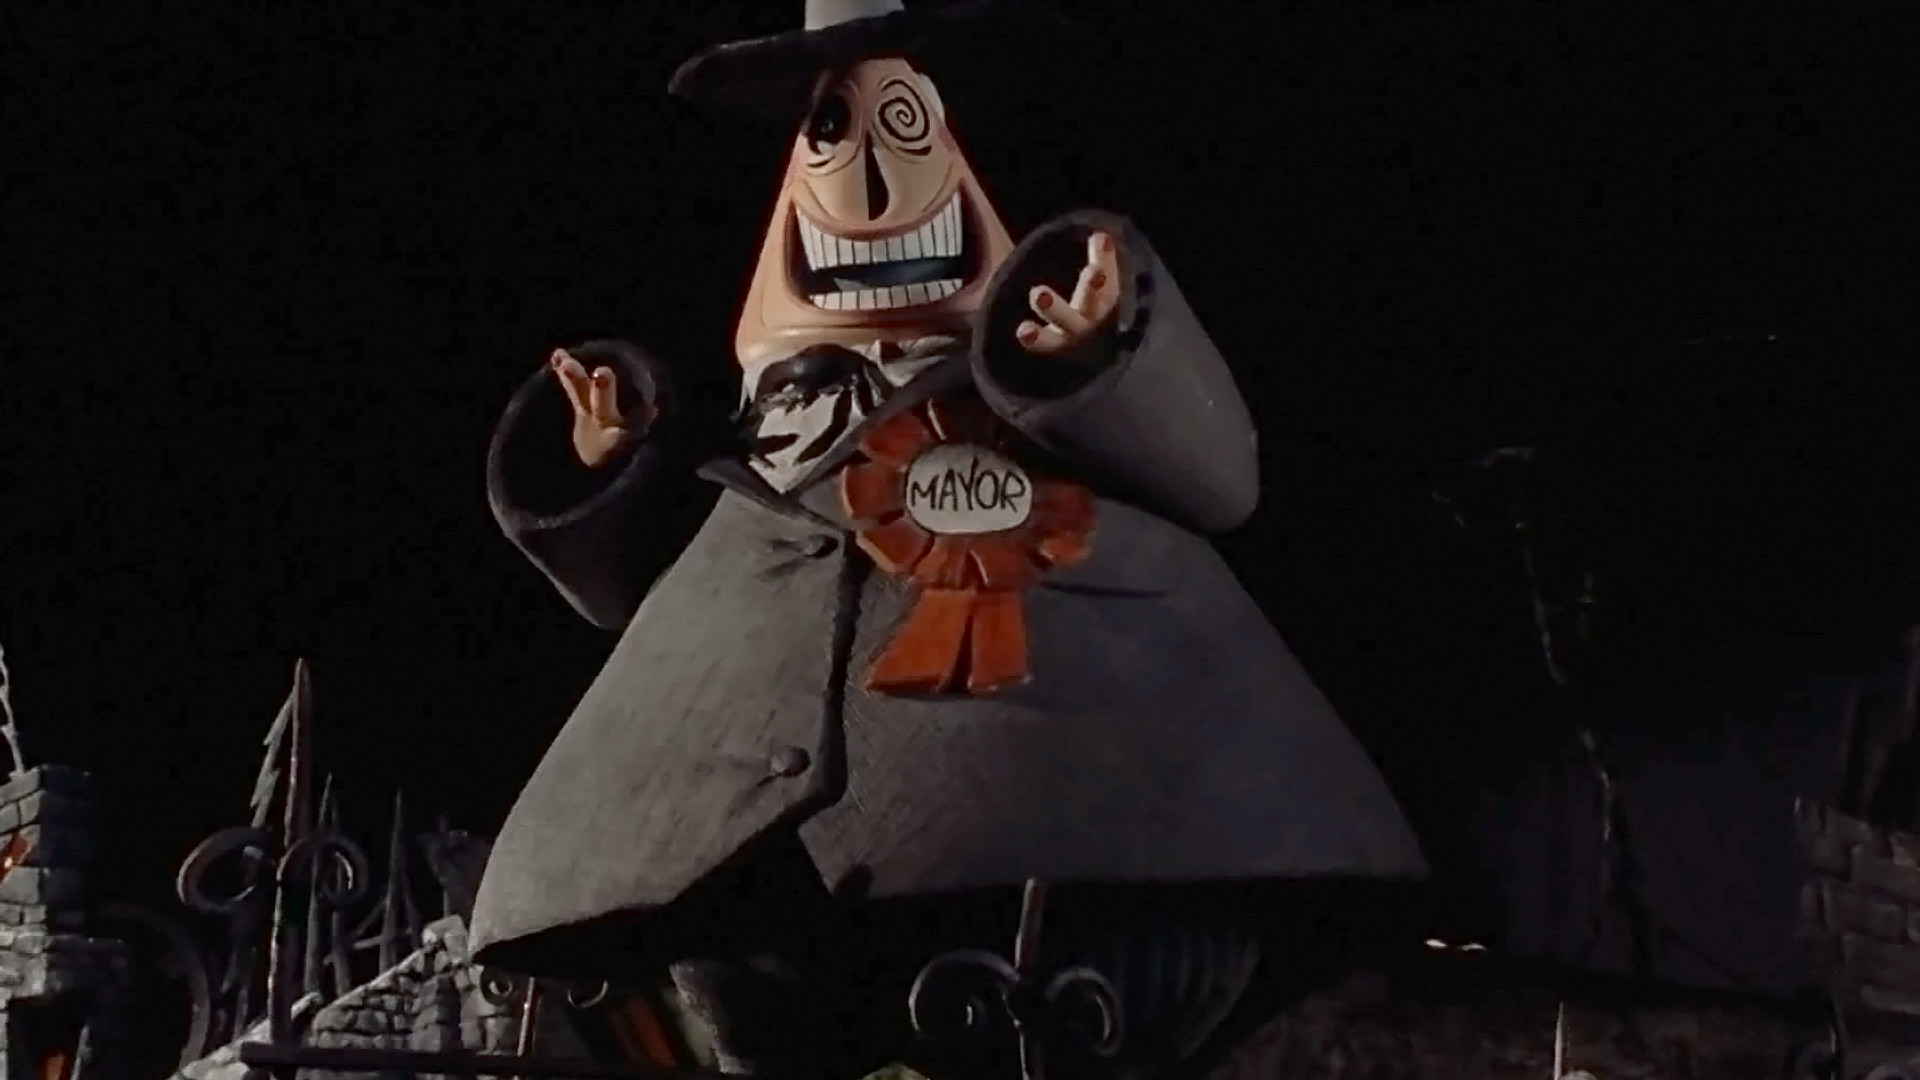 1920x1080 The Mayor of Halloweentown Nightmare Before Christmas Wallpaper